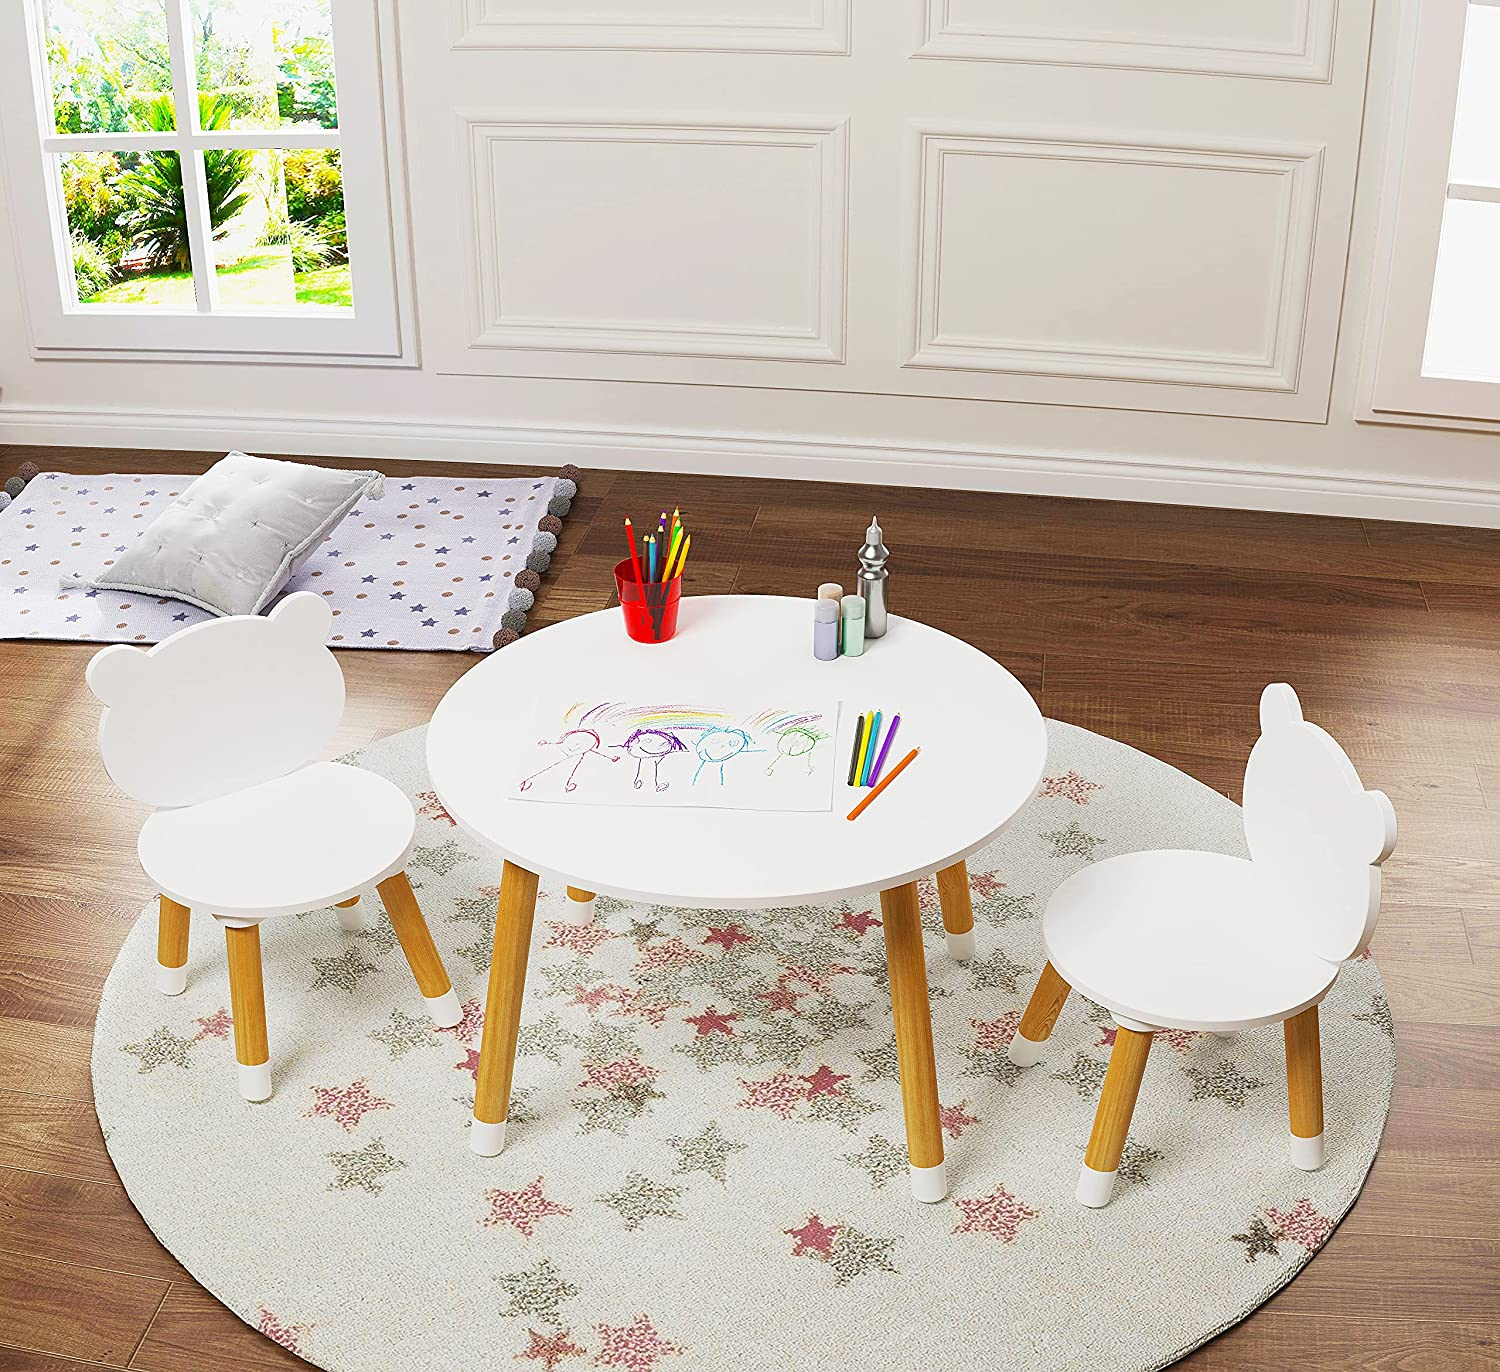 UTEX Kids Wood Table and Chair Set, Kids Play Table with 2 Chairs,3 Pieces Round Play Tablet for Toddlers, Girls, Boys,White